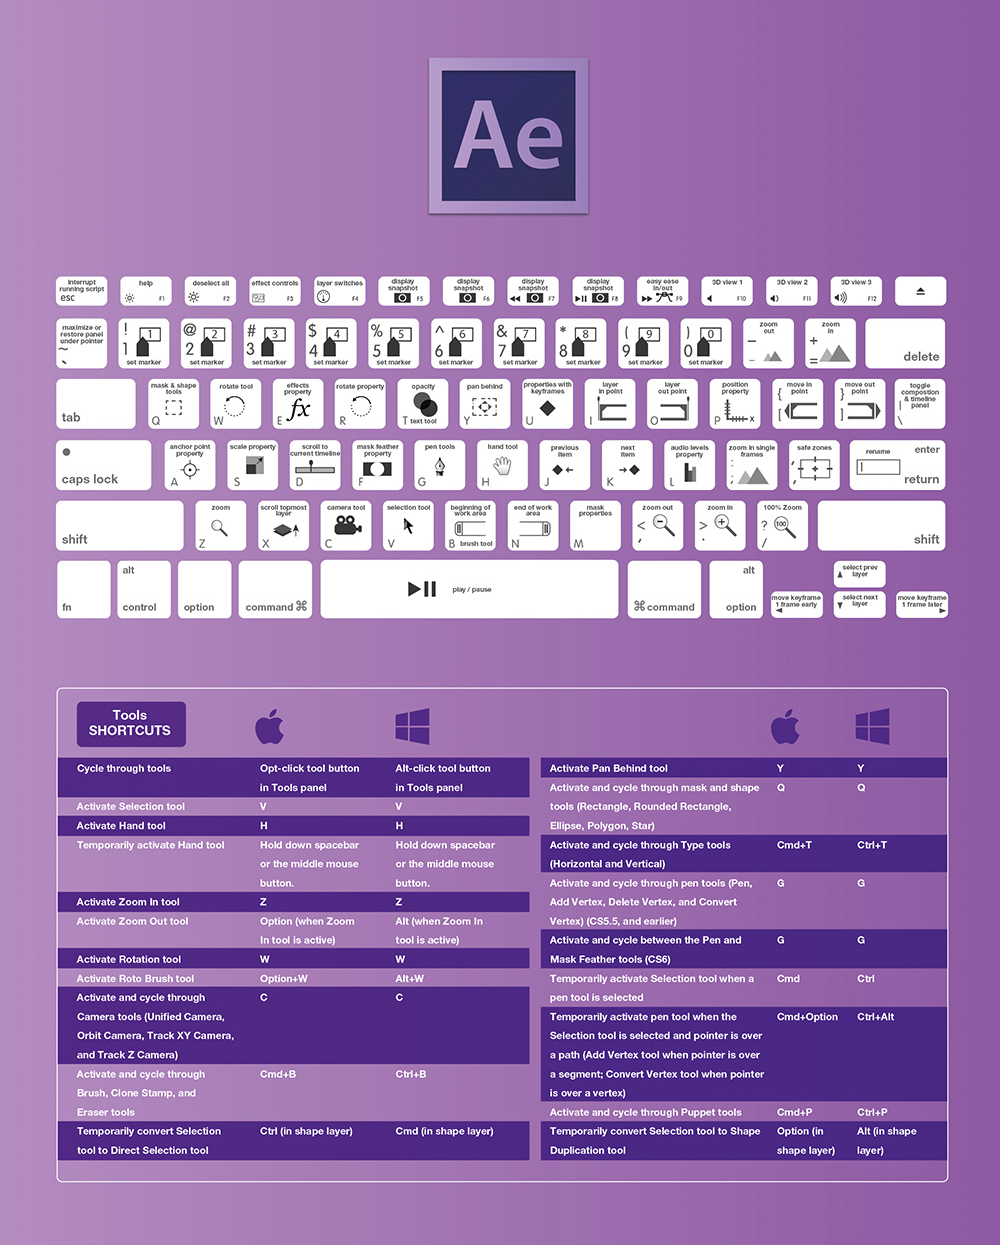 hight resolution of after effects cc shortcuts keyboard shortcuts adobe diagram artwork